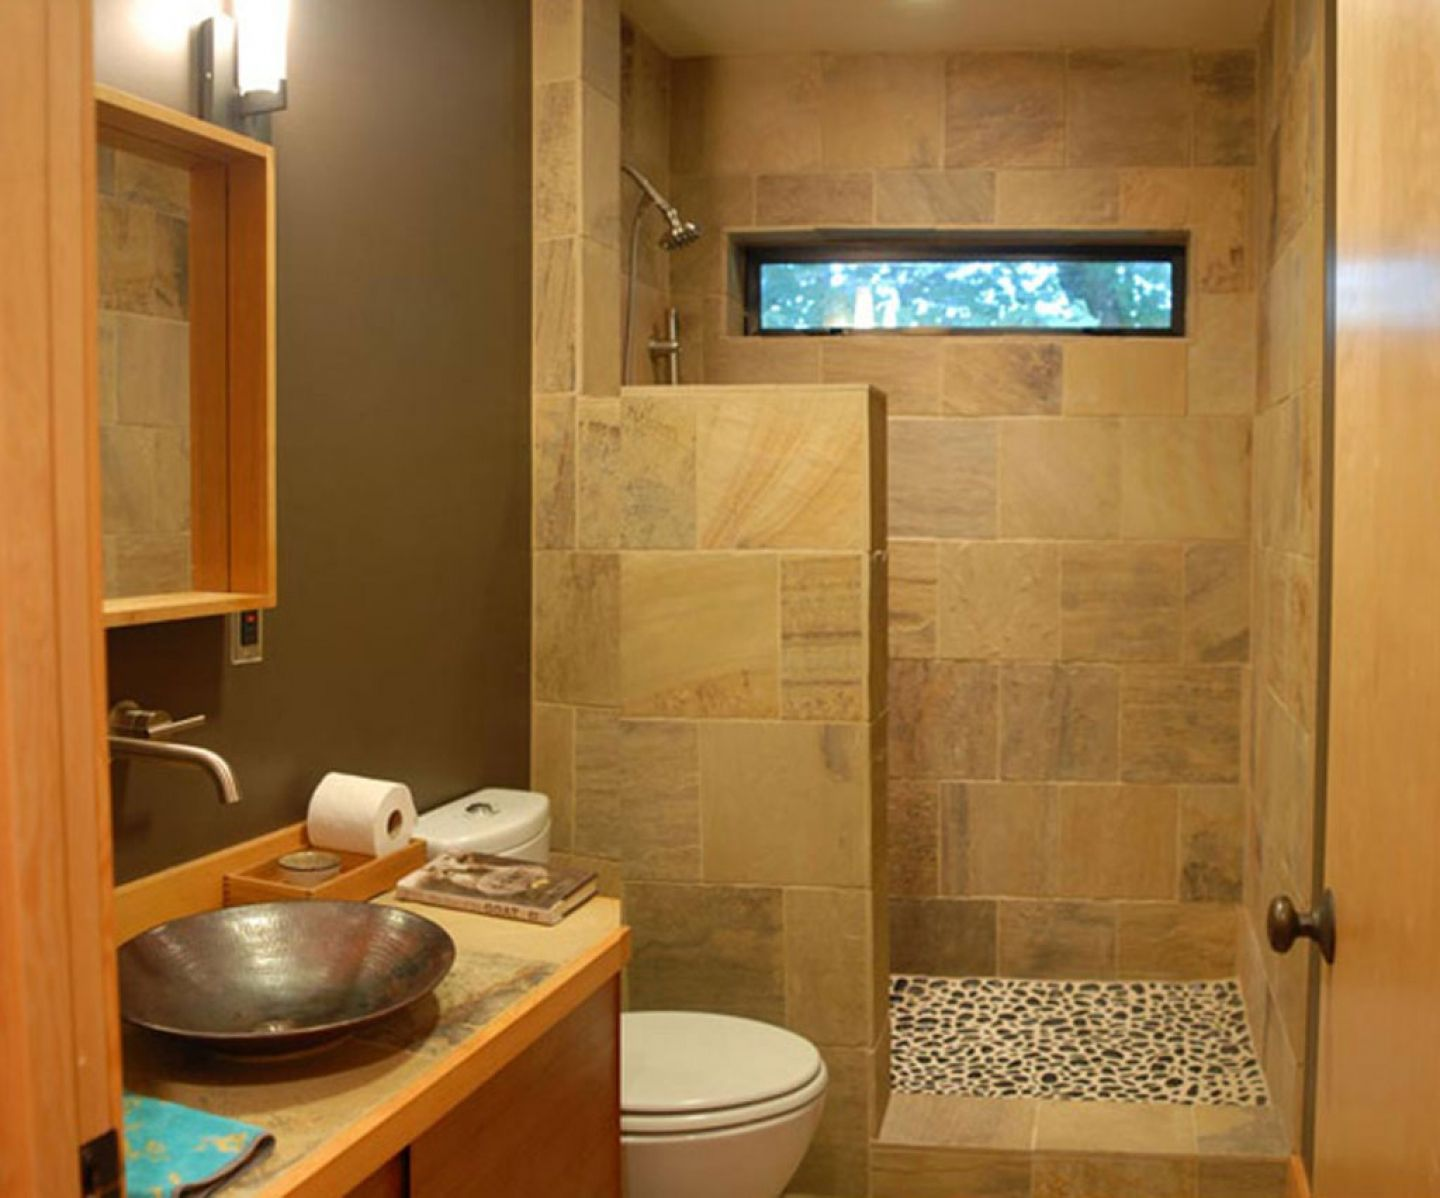 bathroom small bathroom design ideas white wall ceramic tiles floor plans wood brown wooden cabinet black toilet closet bathub shower mirror glass windows - Bathroom Design Ideas For Small Bathrooms